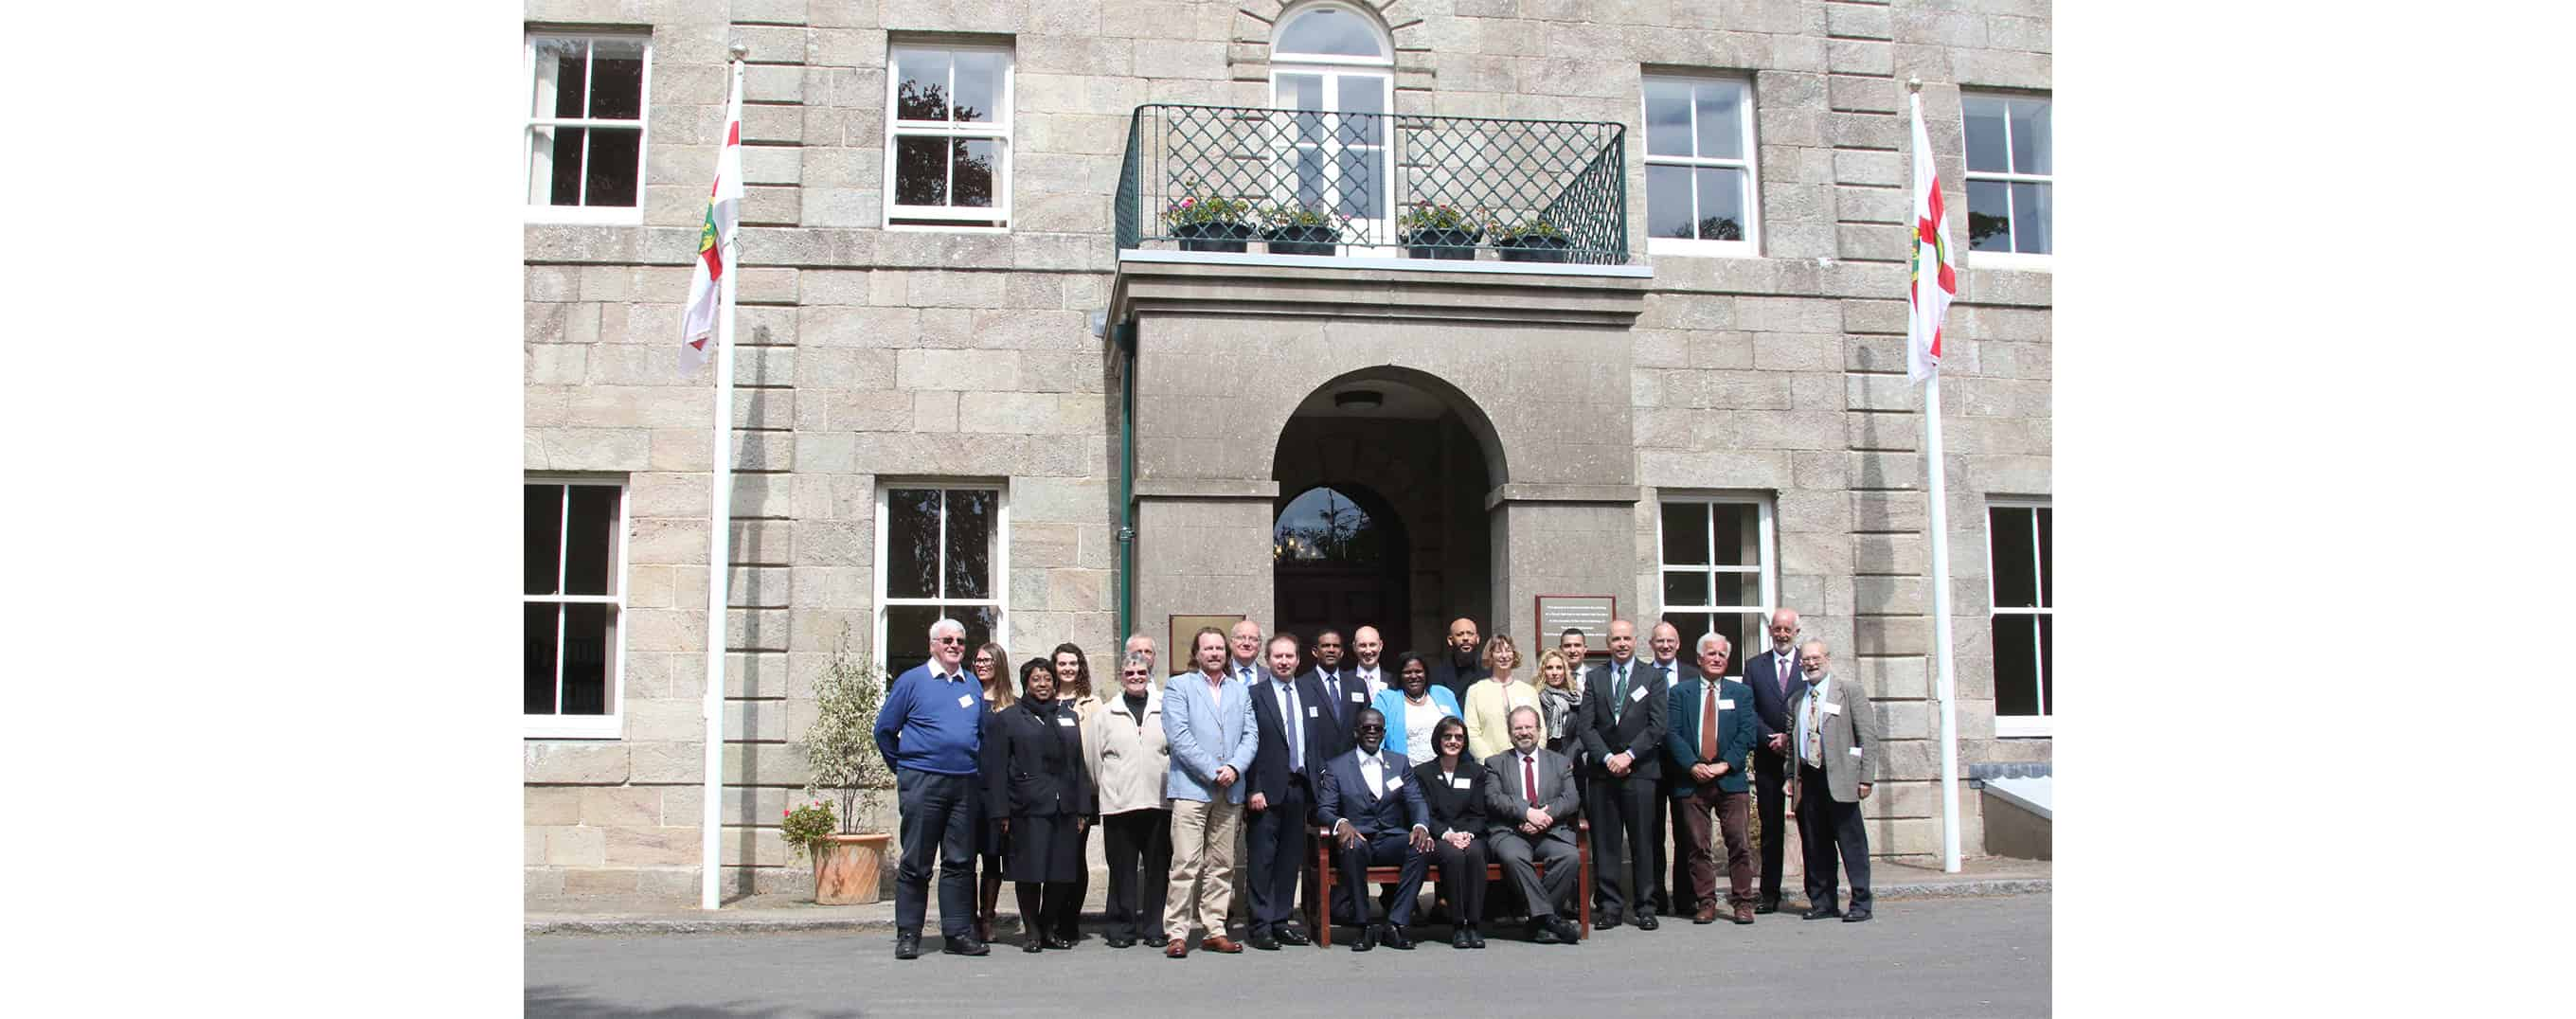 Second meeting of Environment Ministers held on Alderney, April 2017; Copyright: UKOTCF